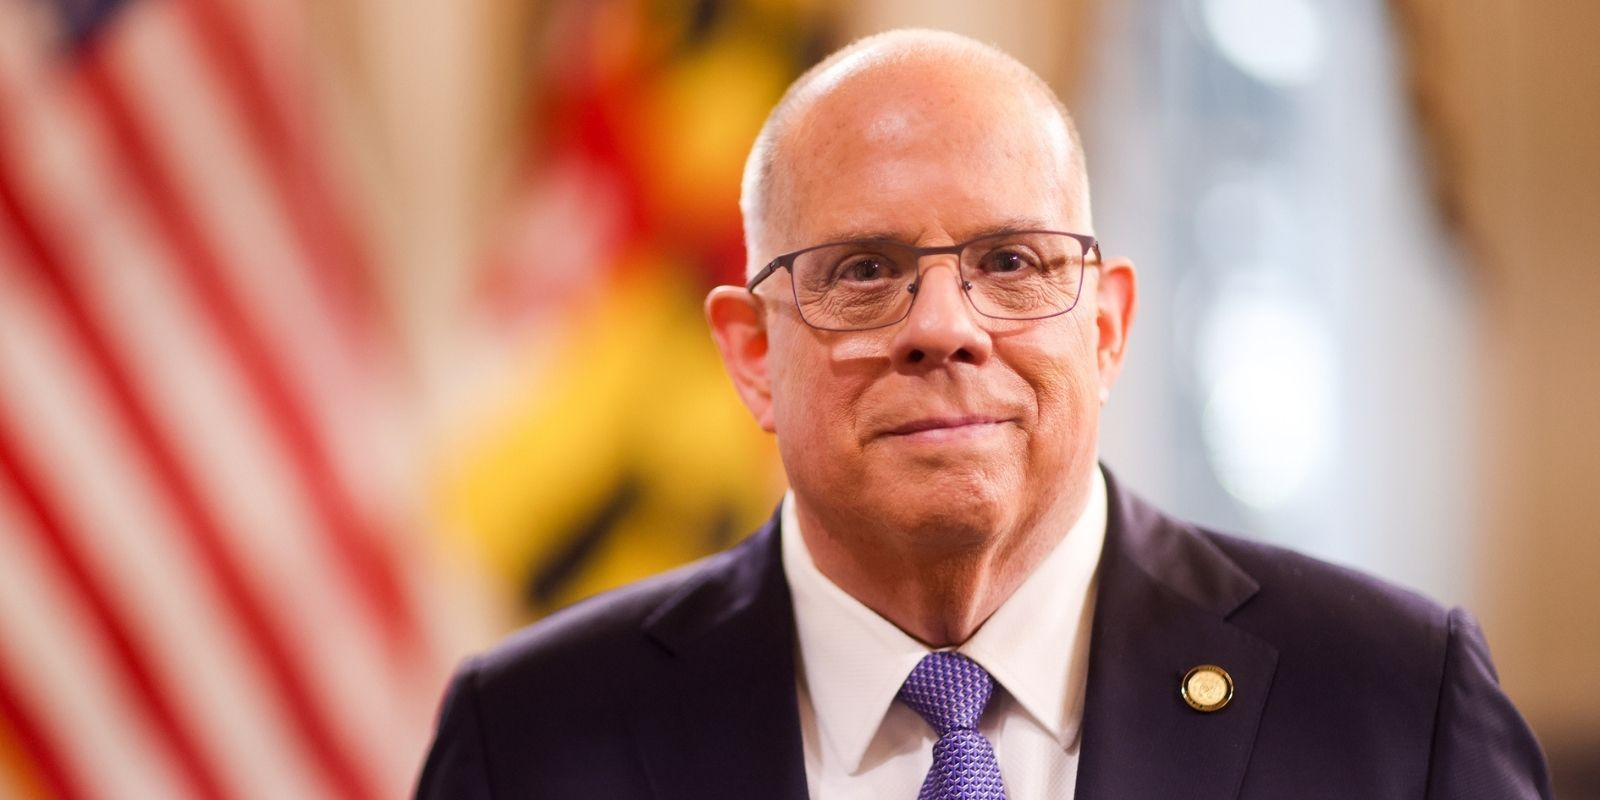 Maryland governor announces end of enhanced pandemic unemployment benefits amid worker shortages